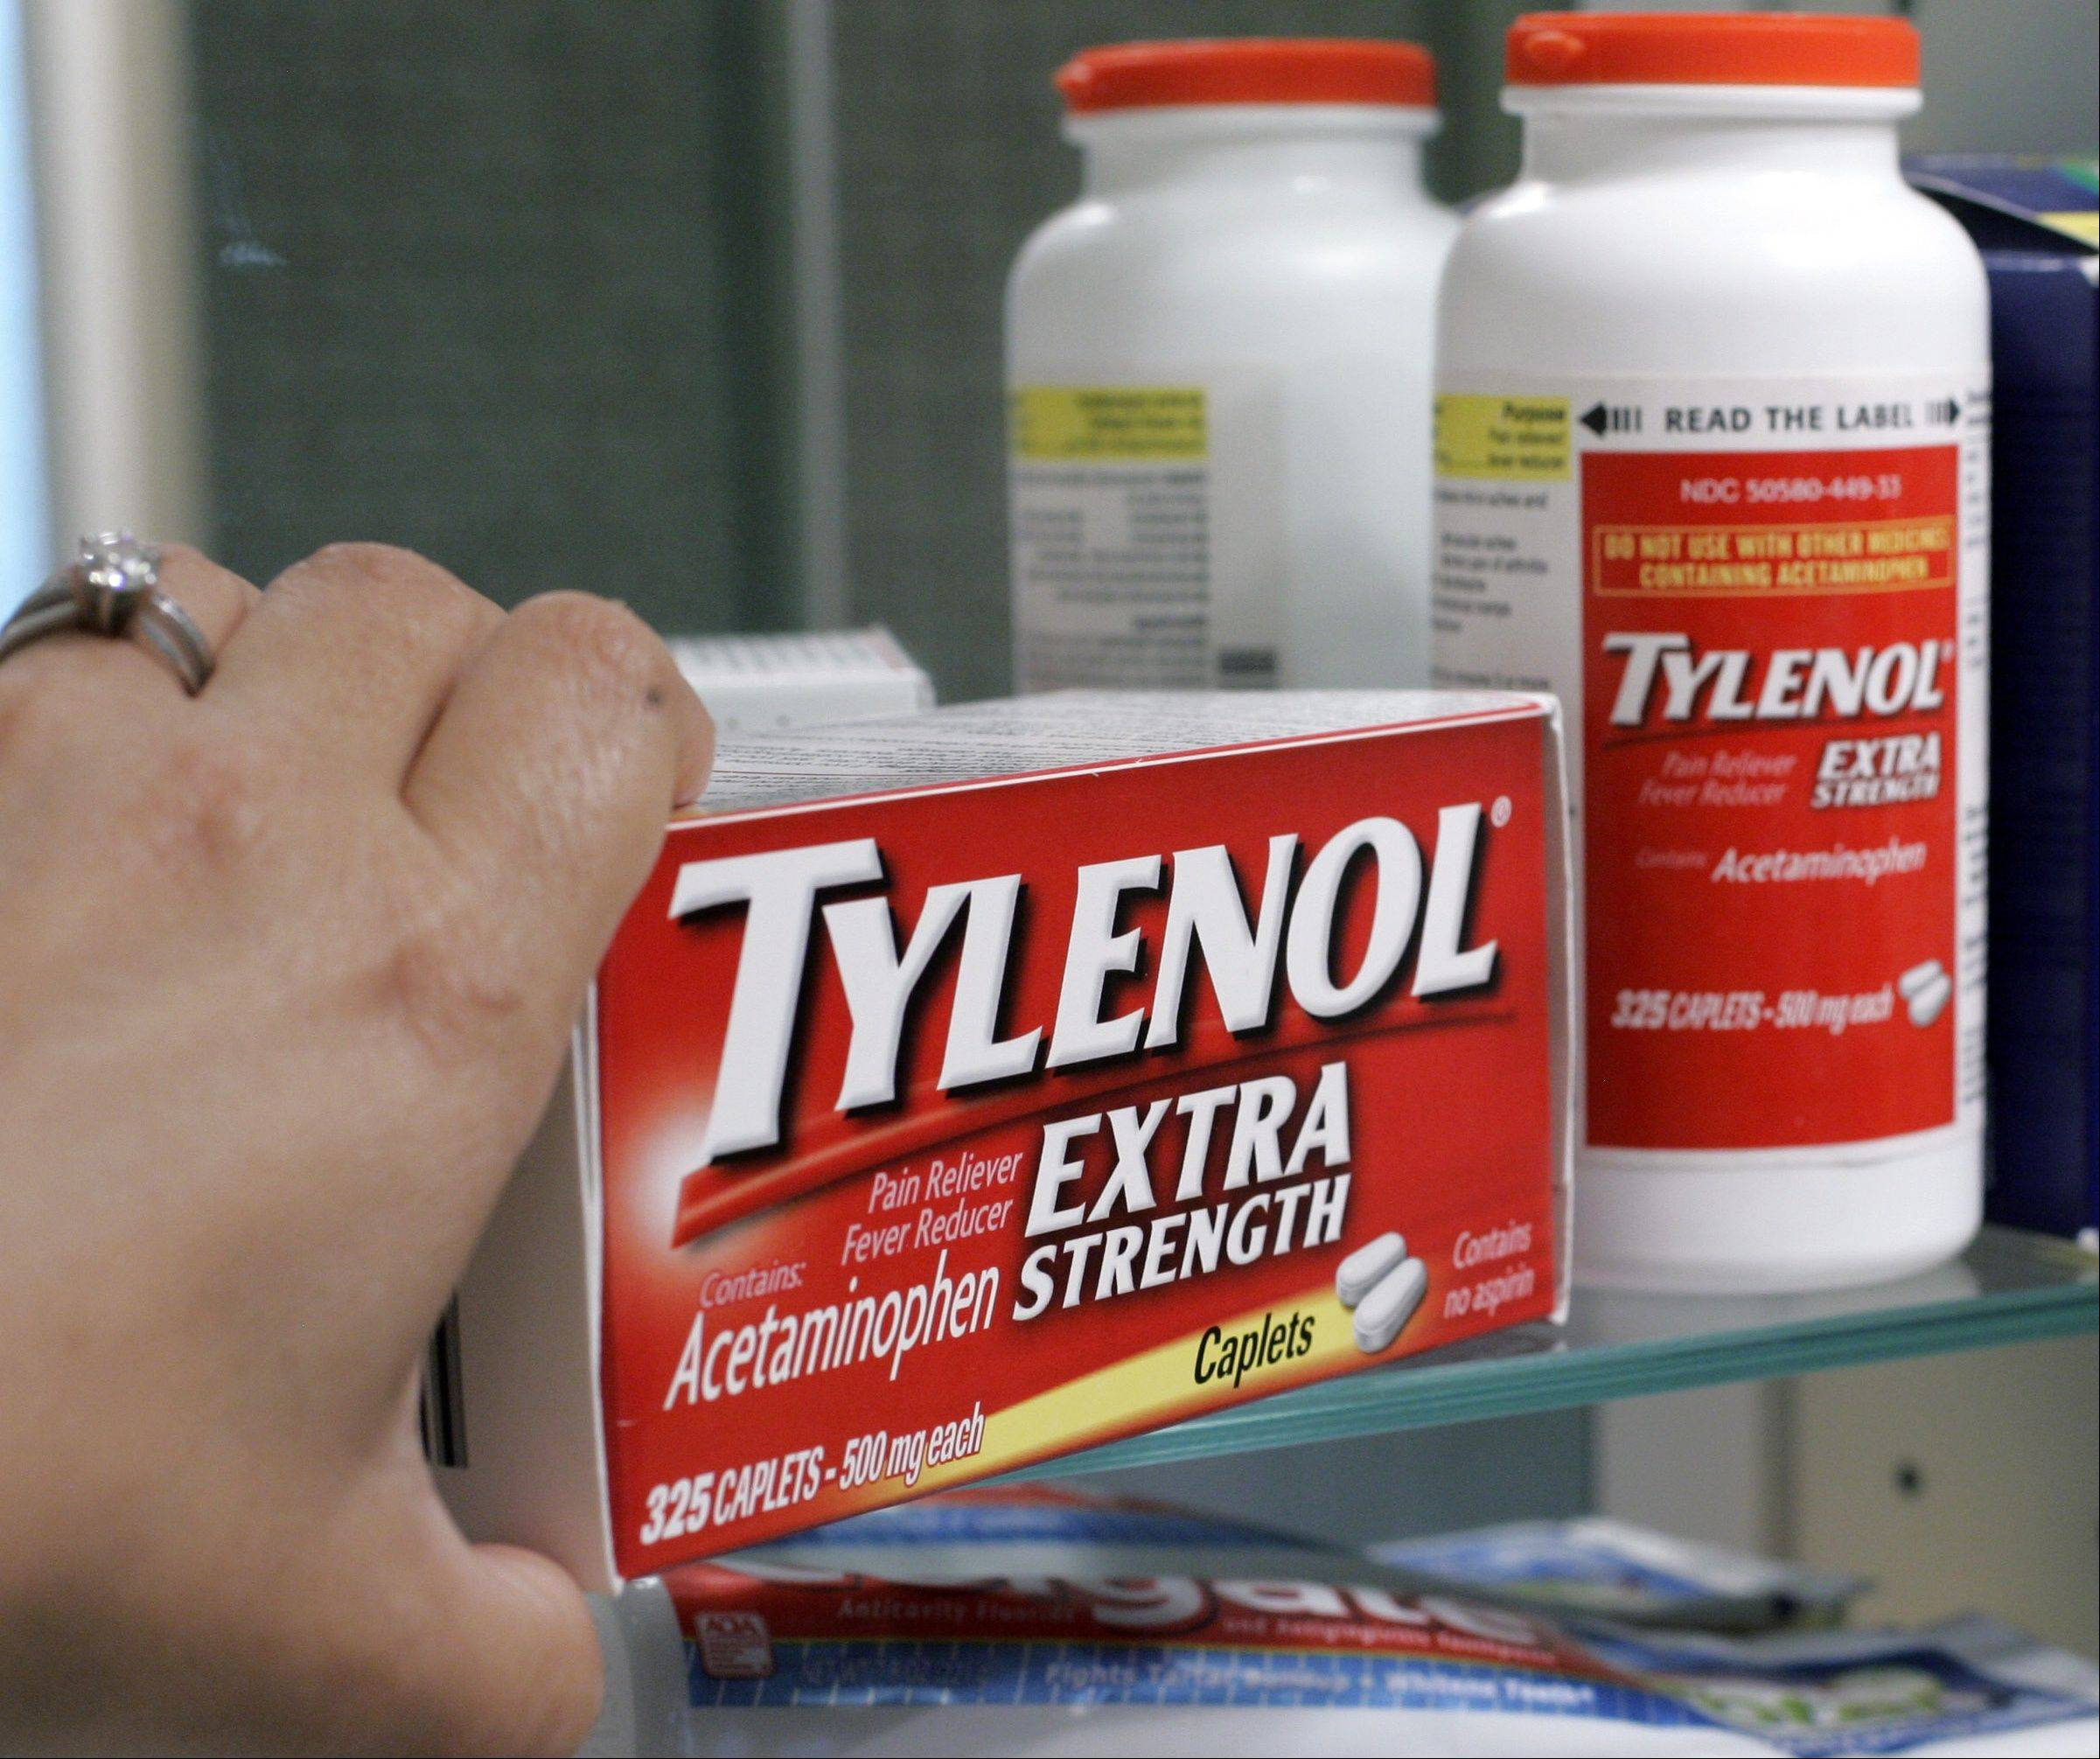 The maximum dose for Extra Strength Tylenol is being reduced to lower the risk of accidental overdose.